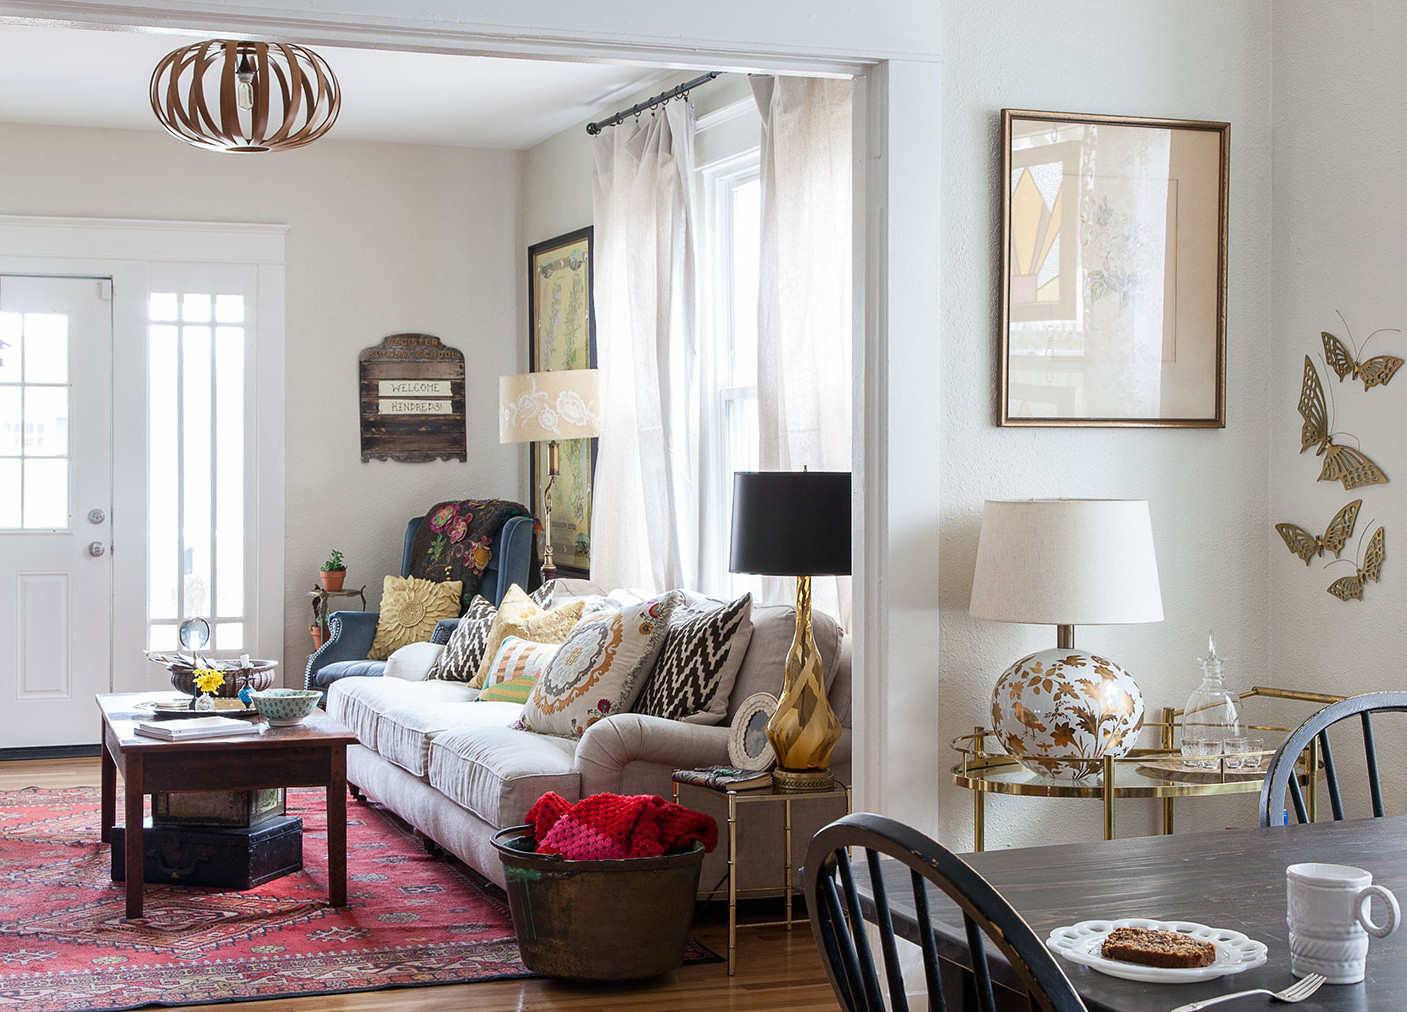 The Nashville, Tennessee, living room of Ruthie Lindsey featuresa spirited mix offamily heirlooms and vintage finds.